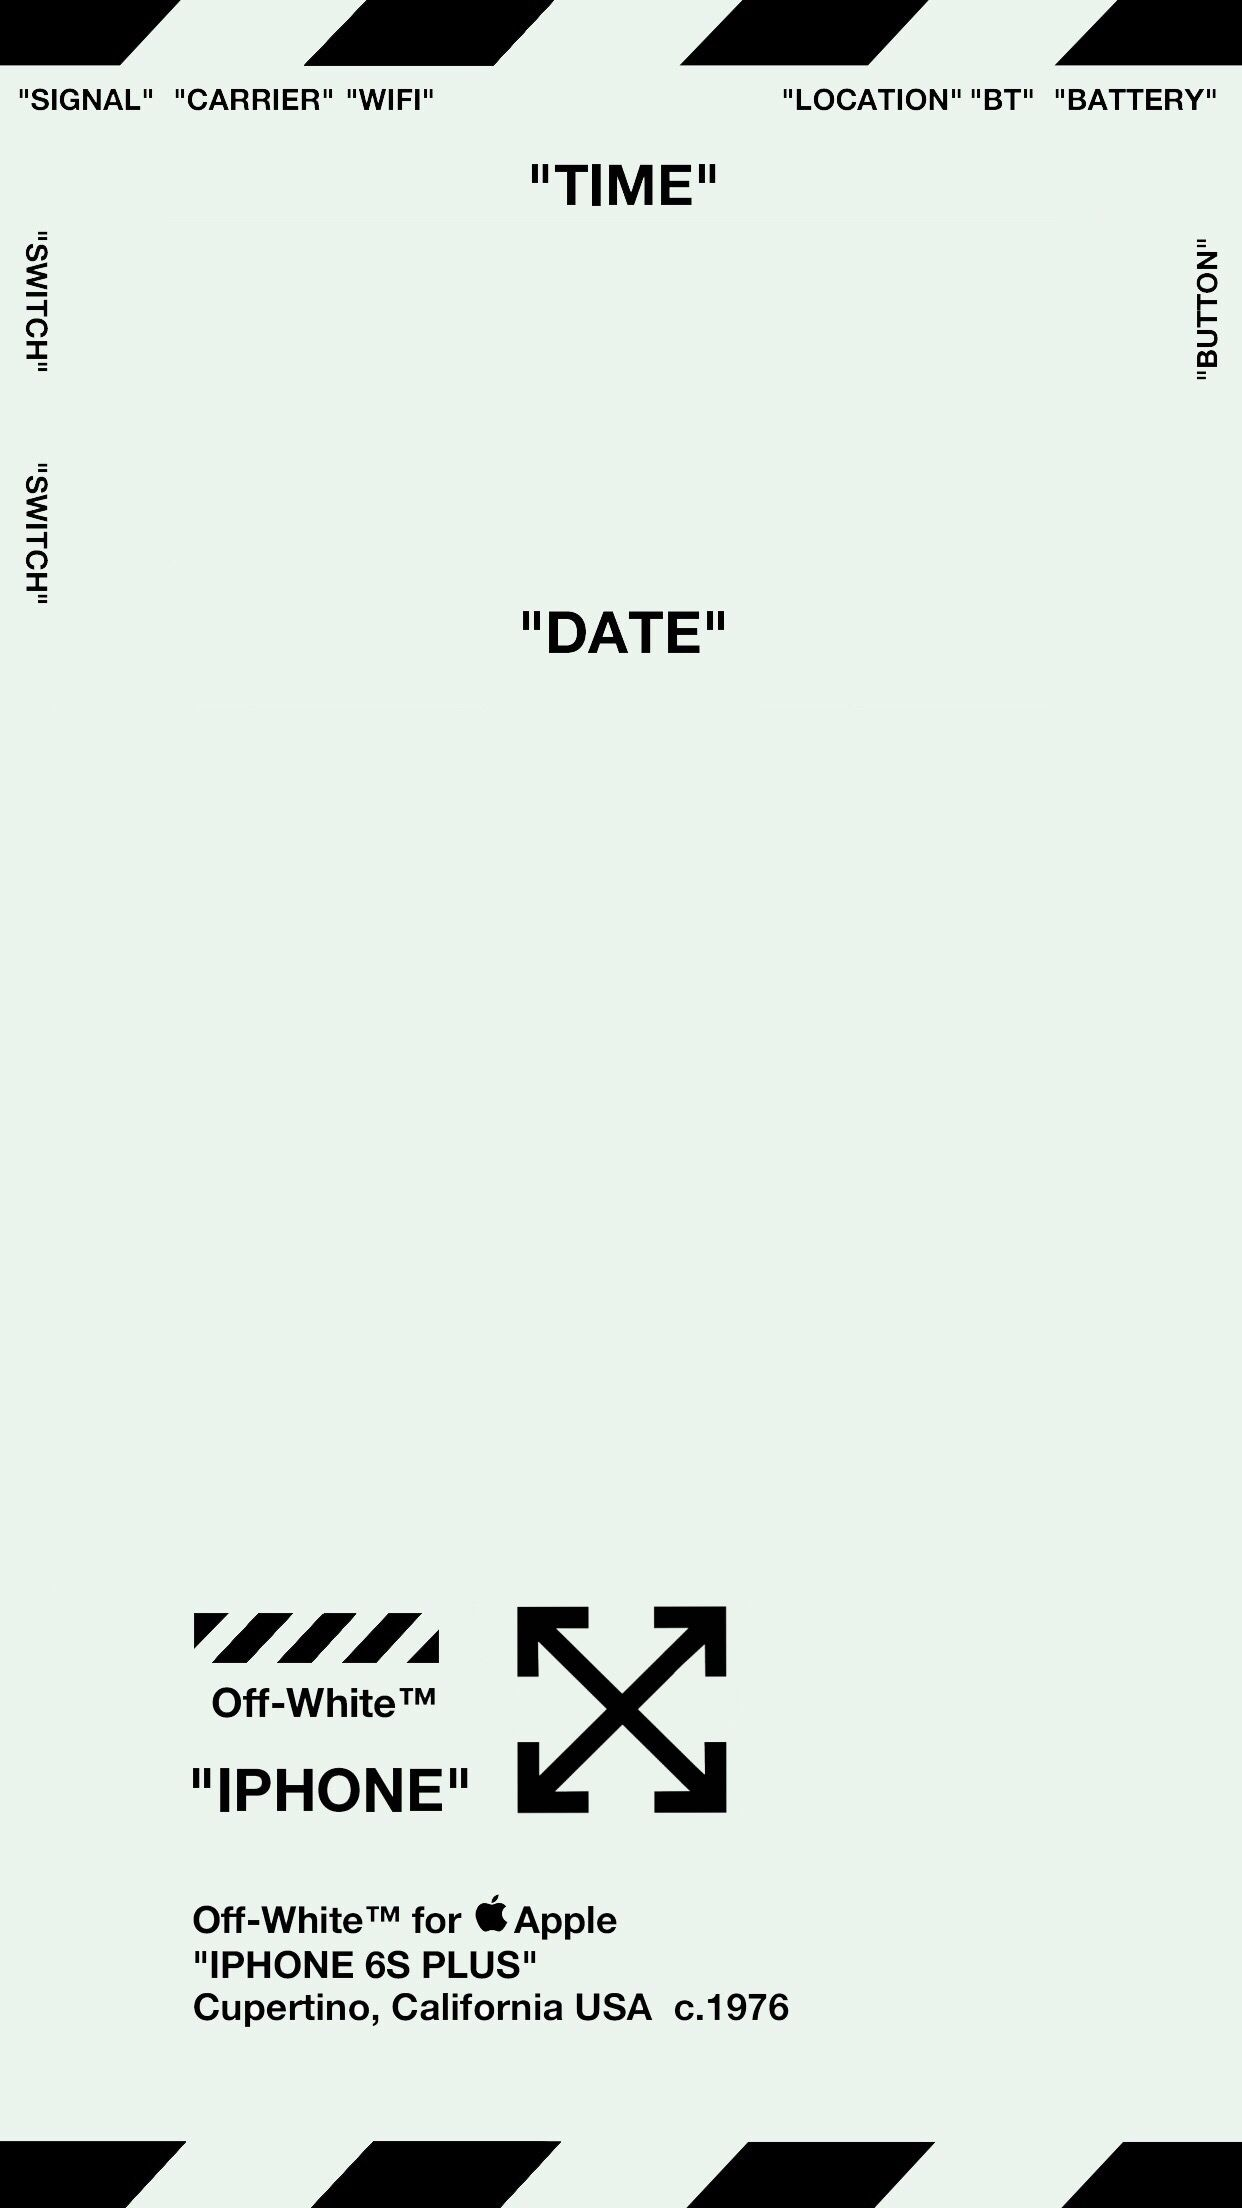 Off White Lock Screen Wallpaper ver 1 MINT GREEN Specifically 1242x2208